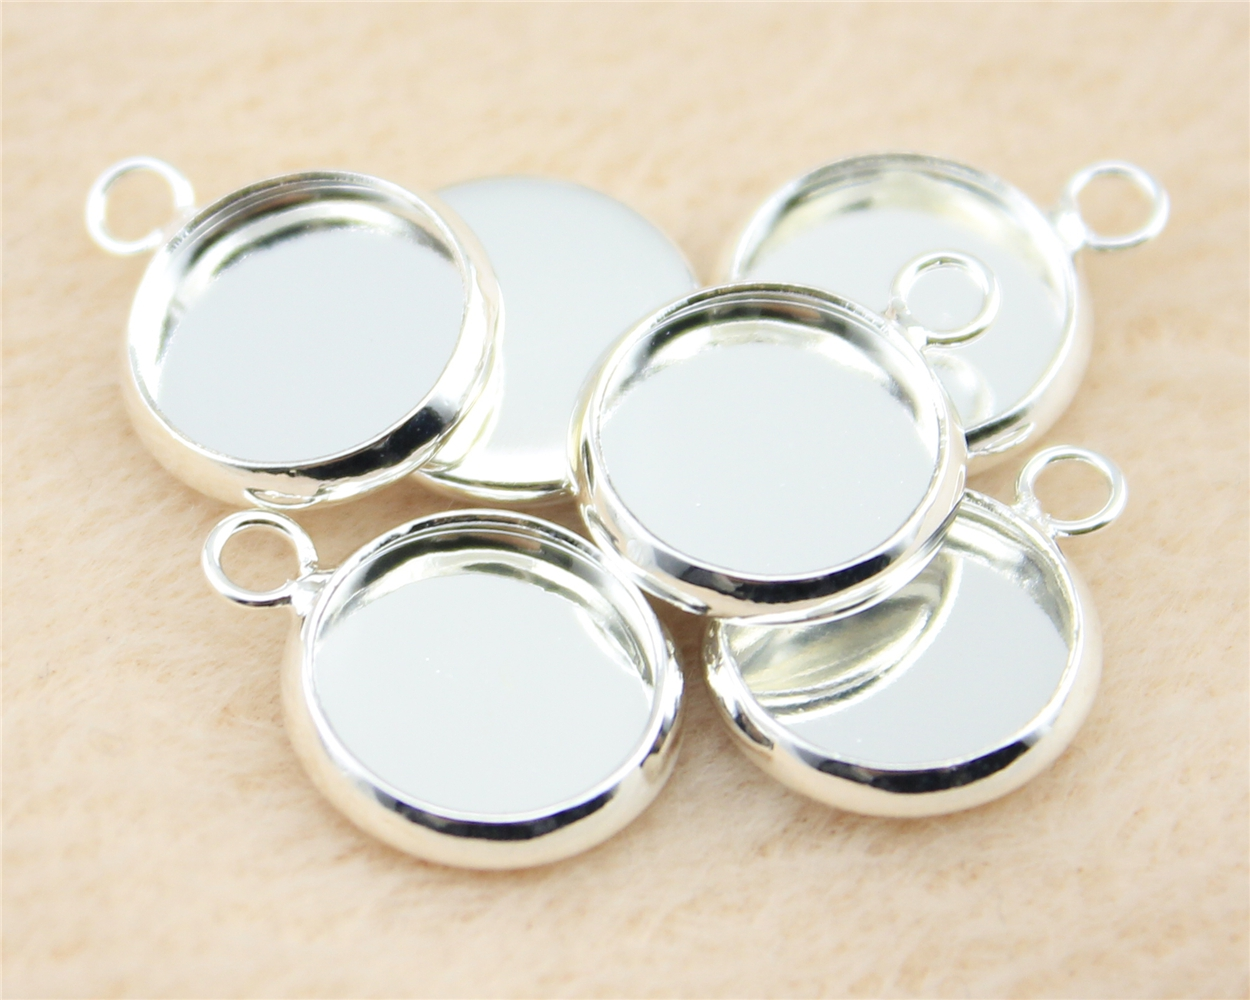 wysiwyg-20pcs-fit-for-10mm-round-glass-cabochon-shiny-silver-color-brass-material-one-side-fontb1-b-